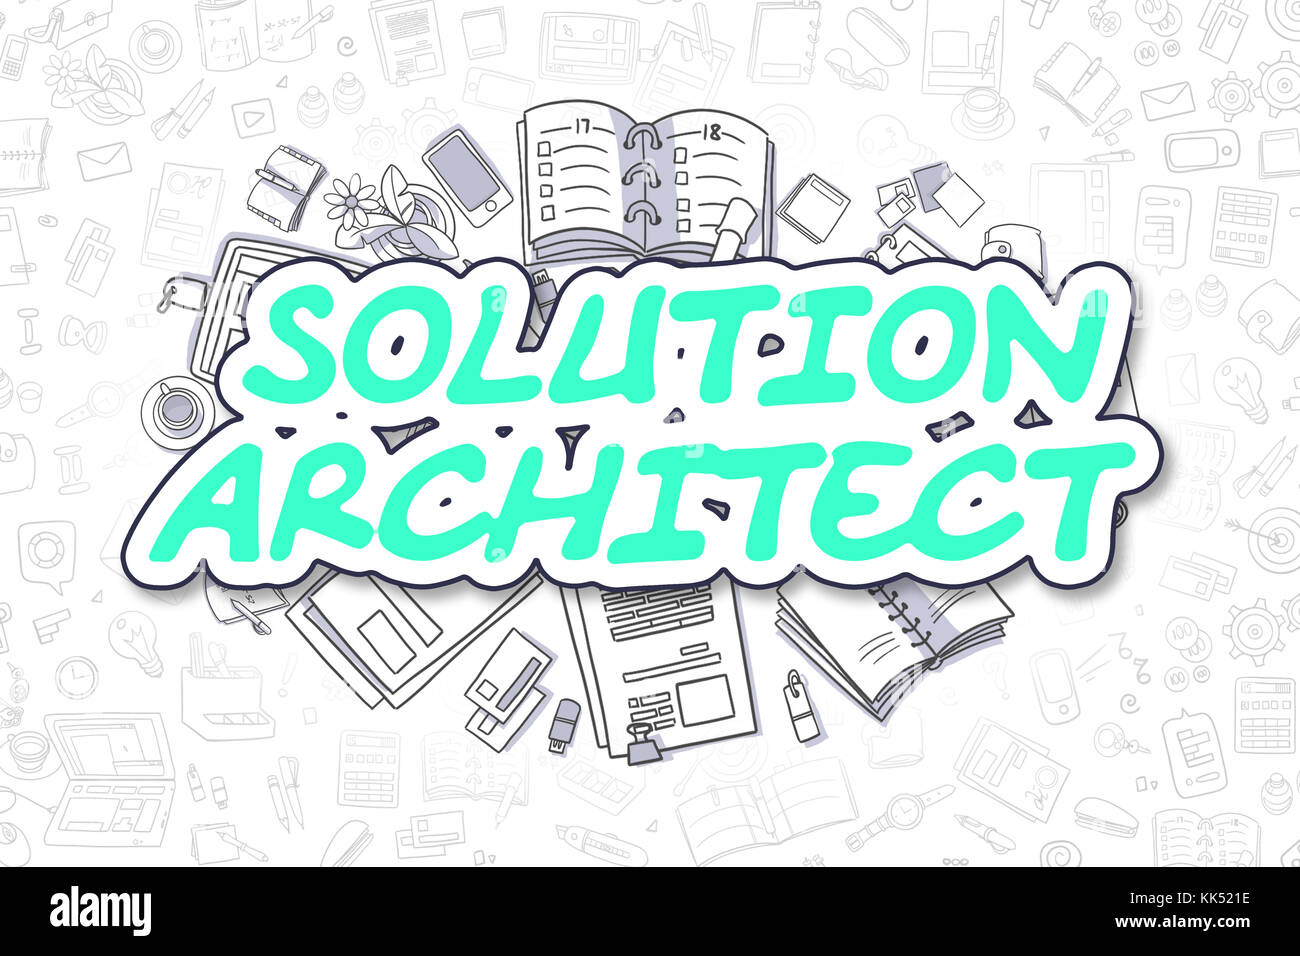 Solution architect doodle green word stock photo for Solution architect